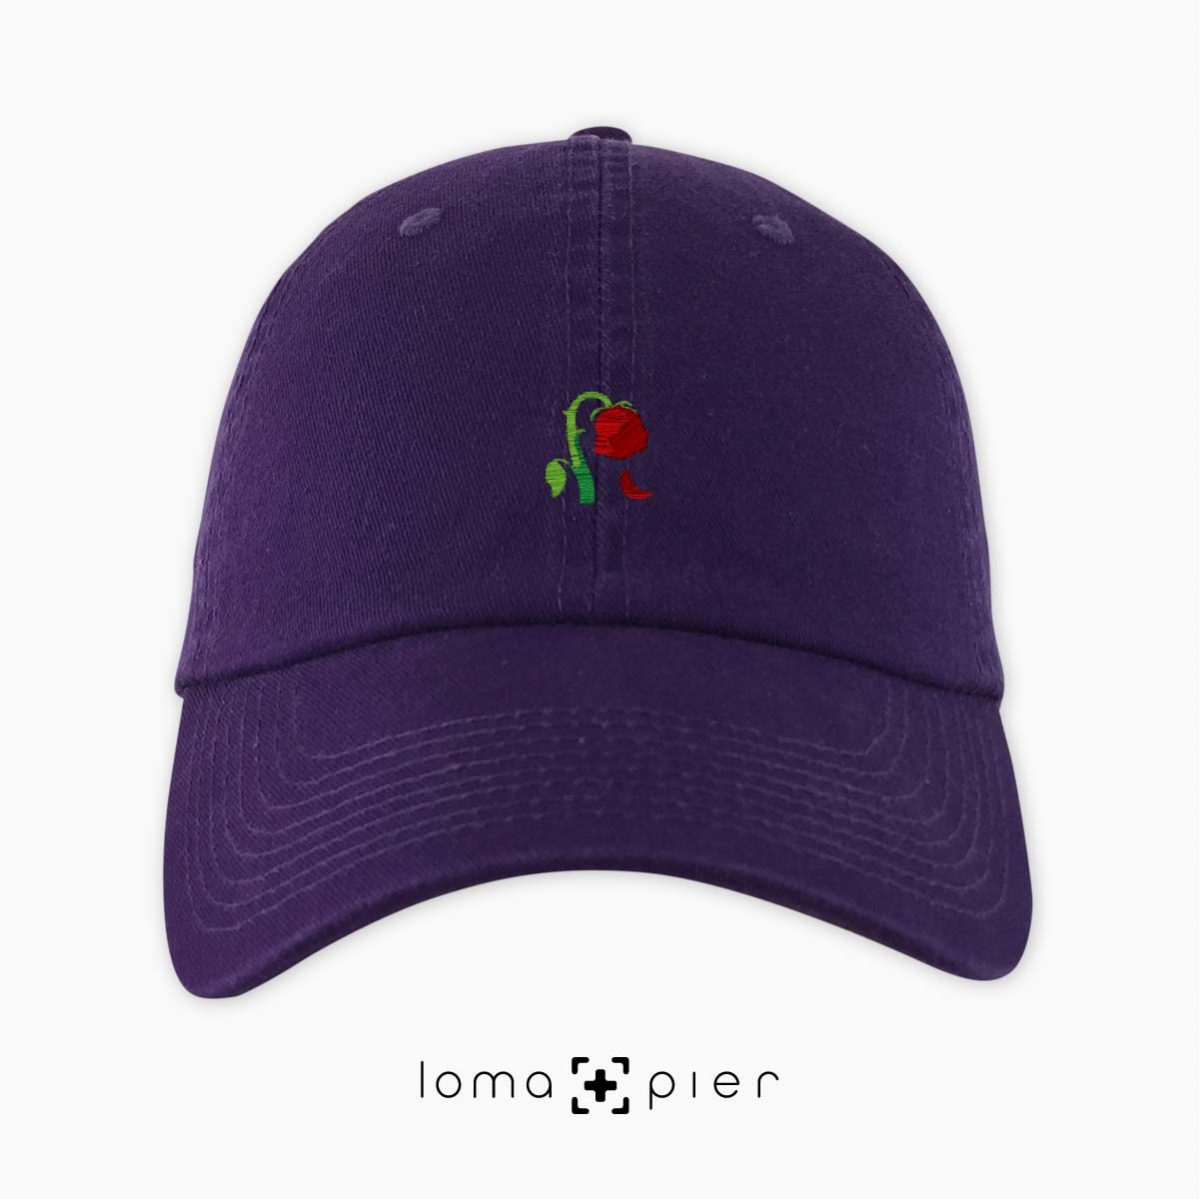 DYING ROSE EMOJI icon embroidered on a purple unstructured dad hat by loma+pier hat store made in the USA